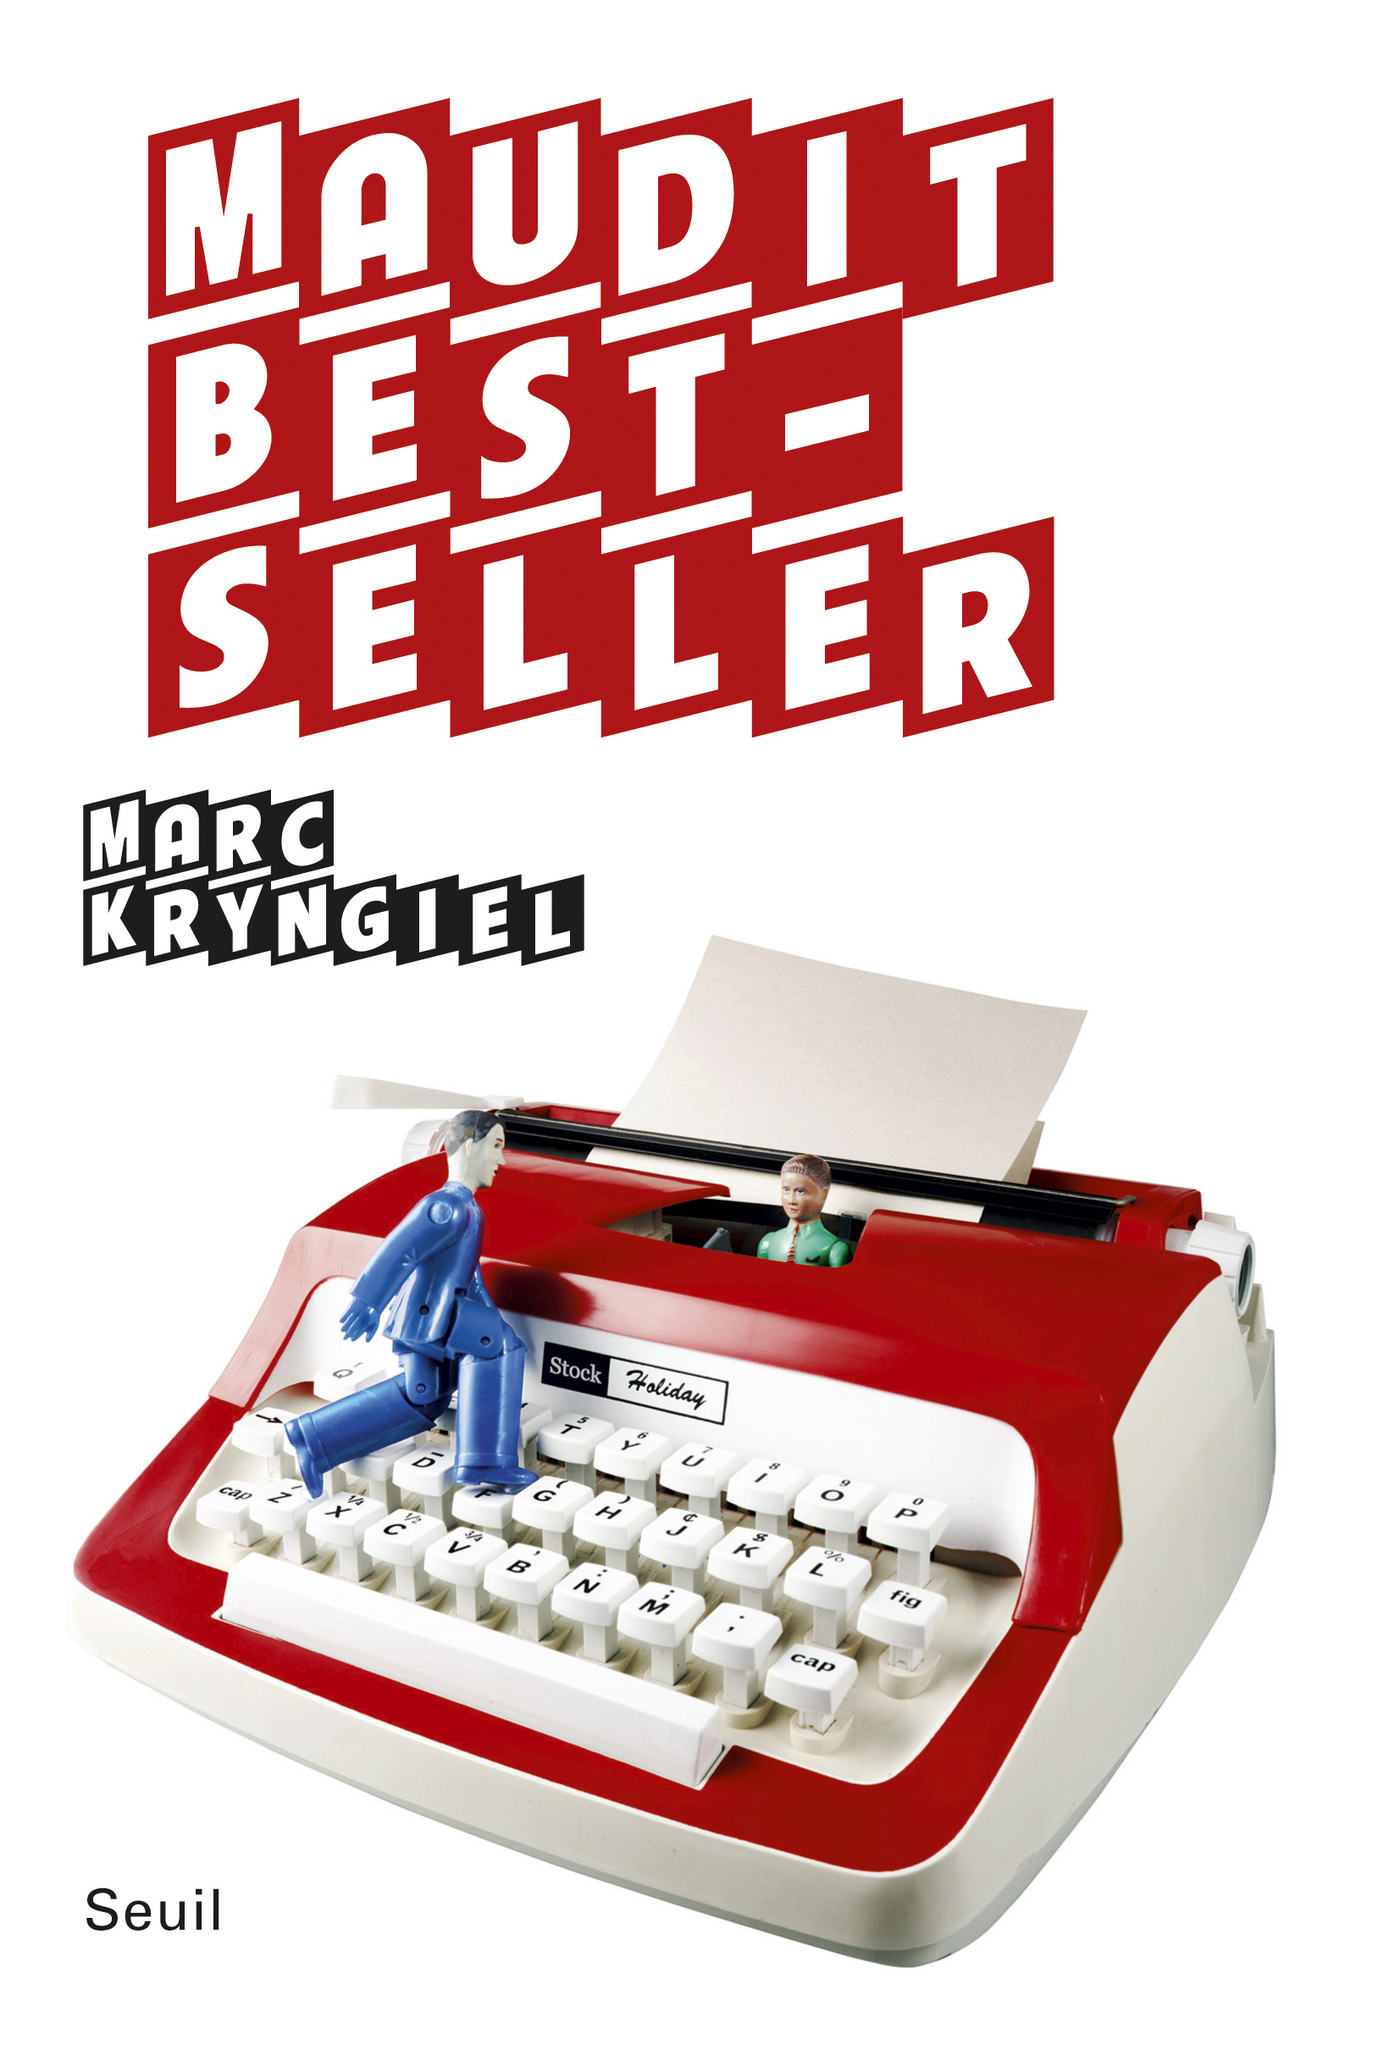 Maudit Best-seller